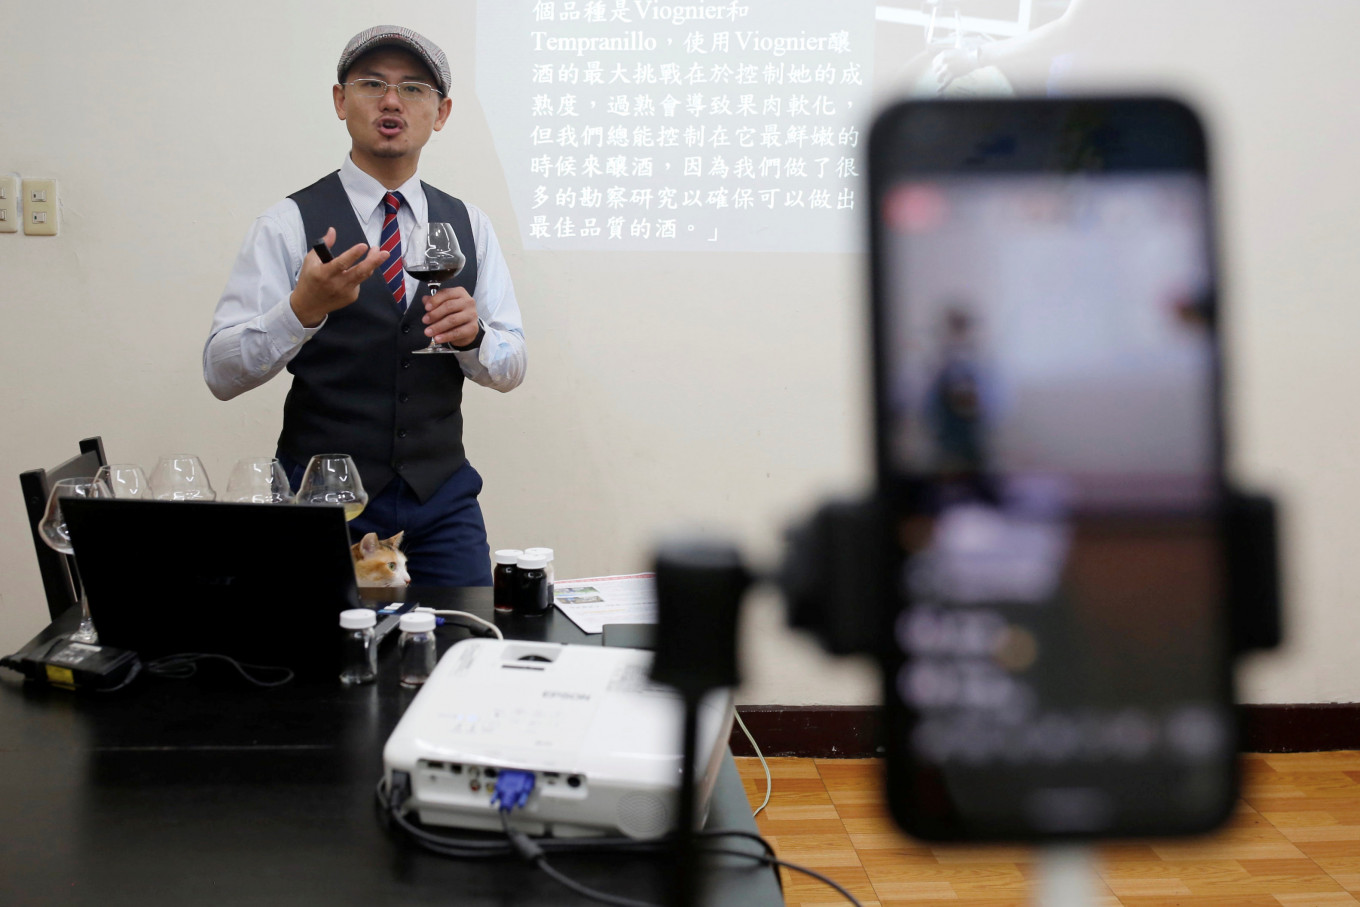 Web over virus: Taiwan sommelier takes wine tasting online